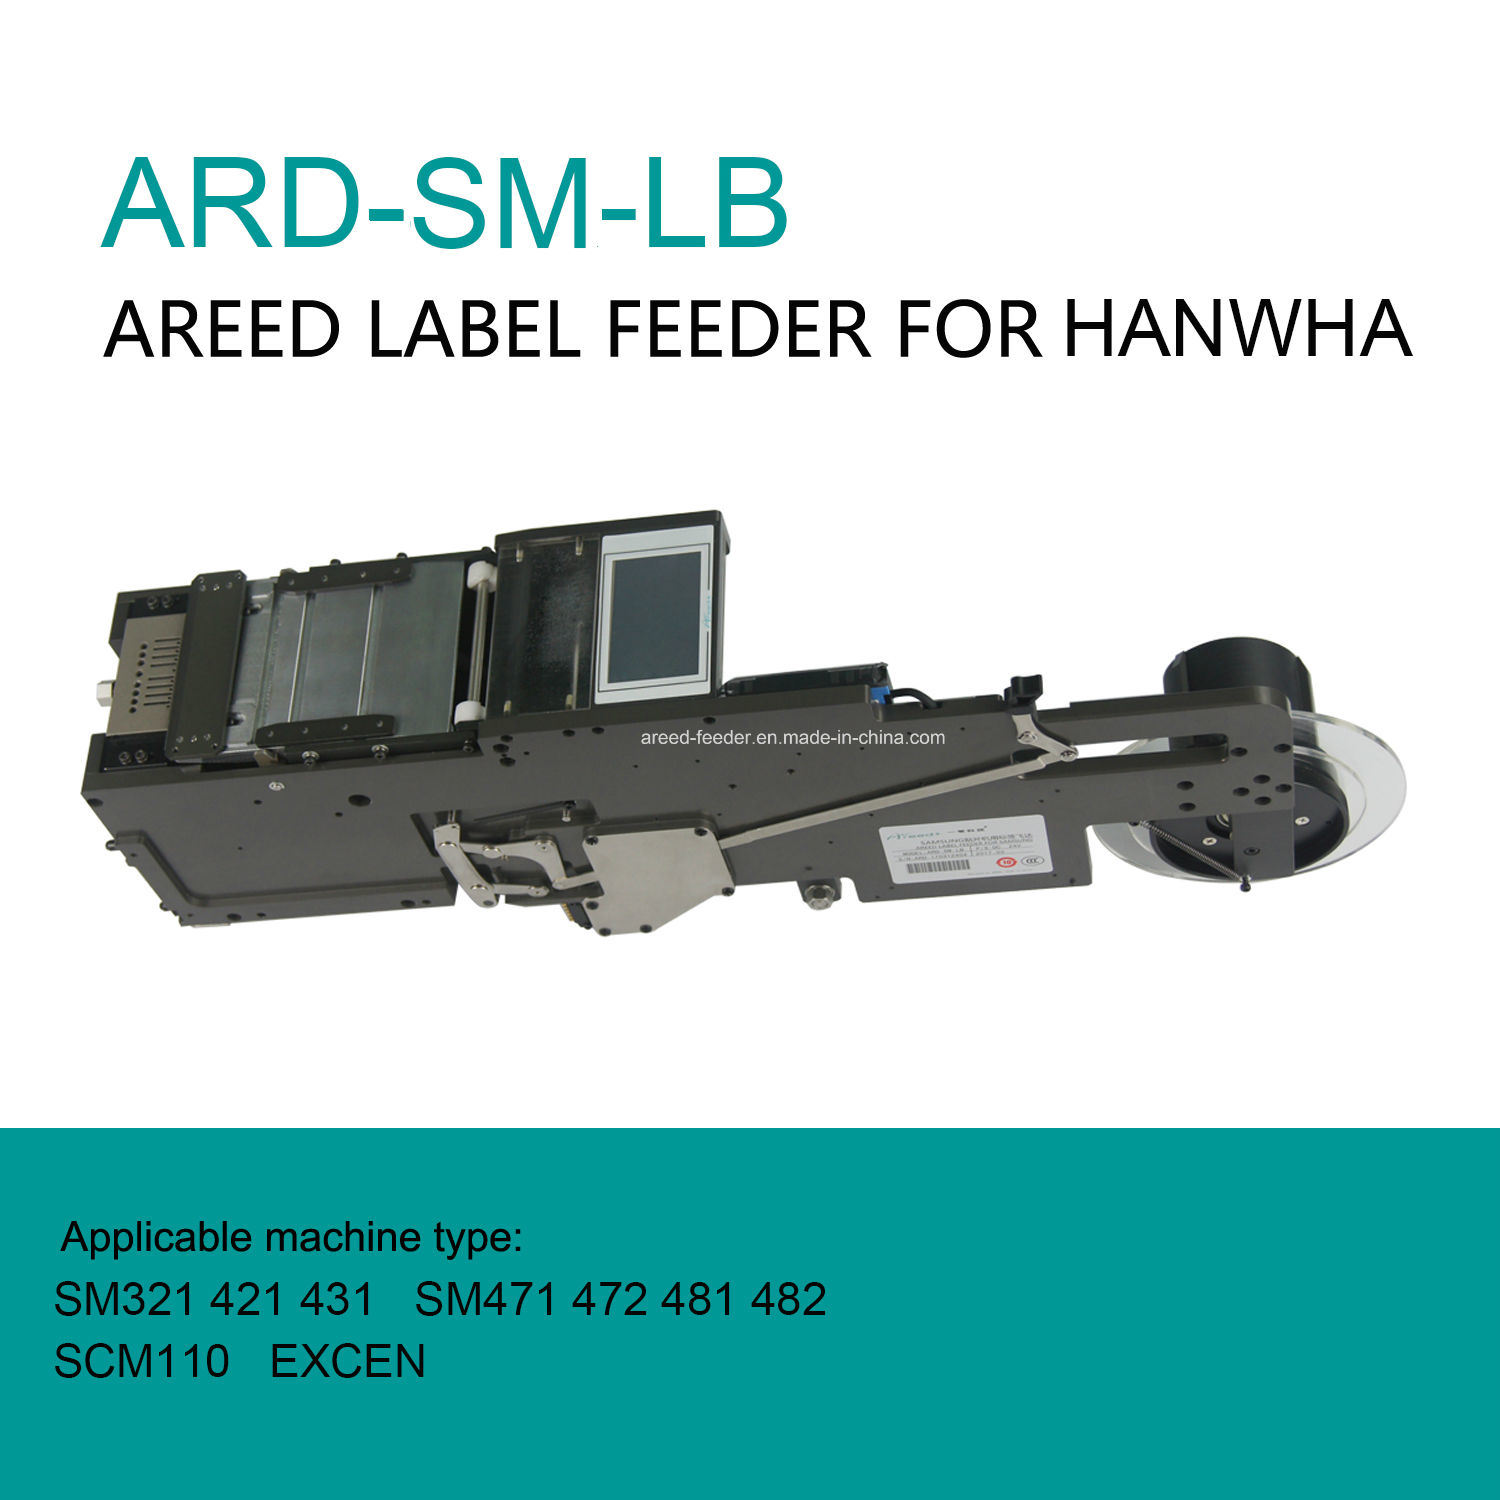 feeder for china juki electric areed product tape fcoemjnthrku label machine smt mounter